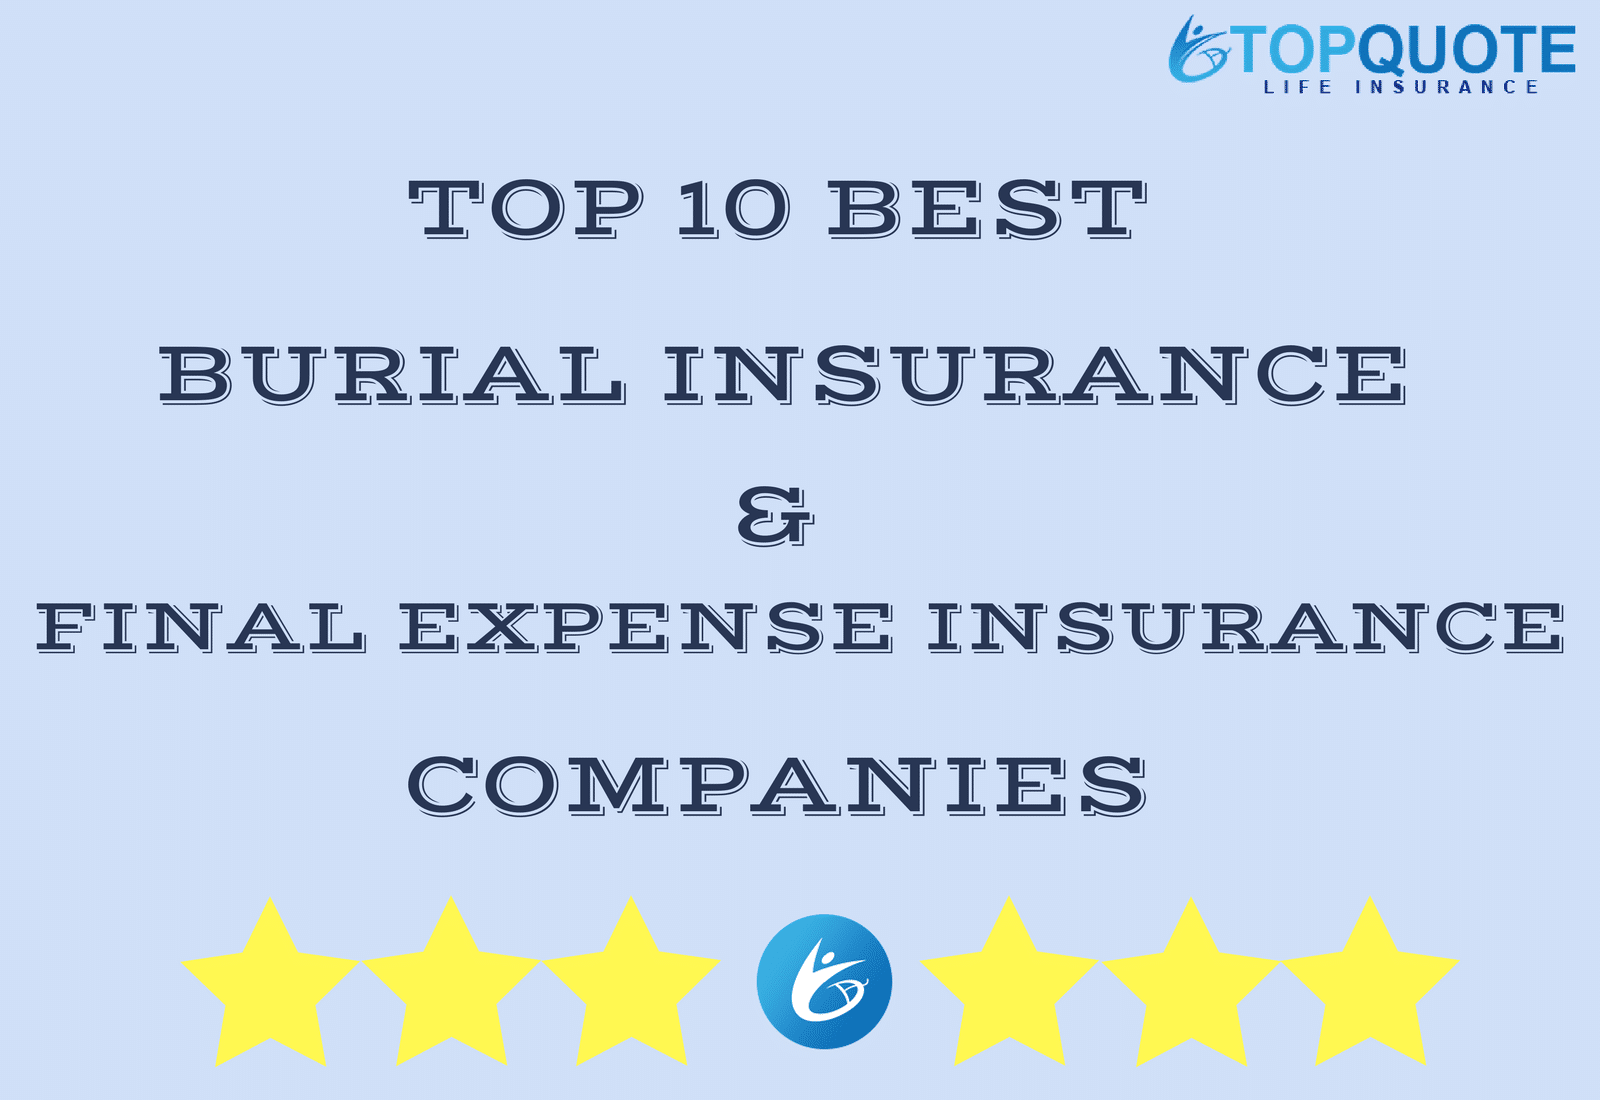 Accidental Life Insurance Quotes 2018 Top 10 Best Burial Insurance & Final Expense Insurance Companies